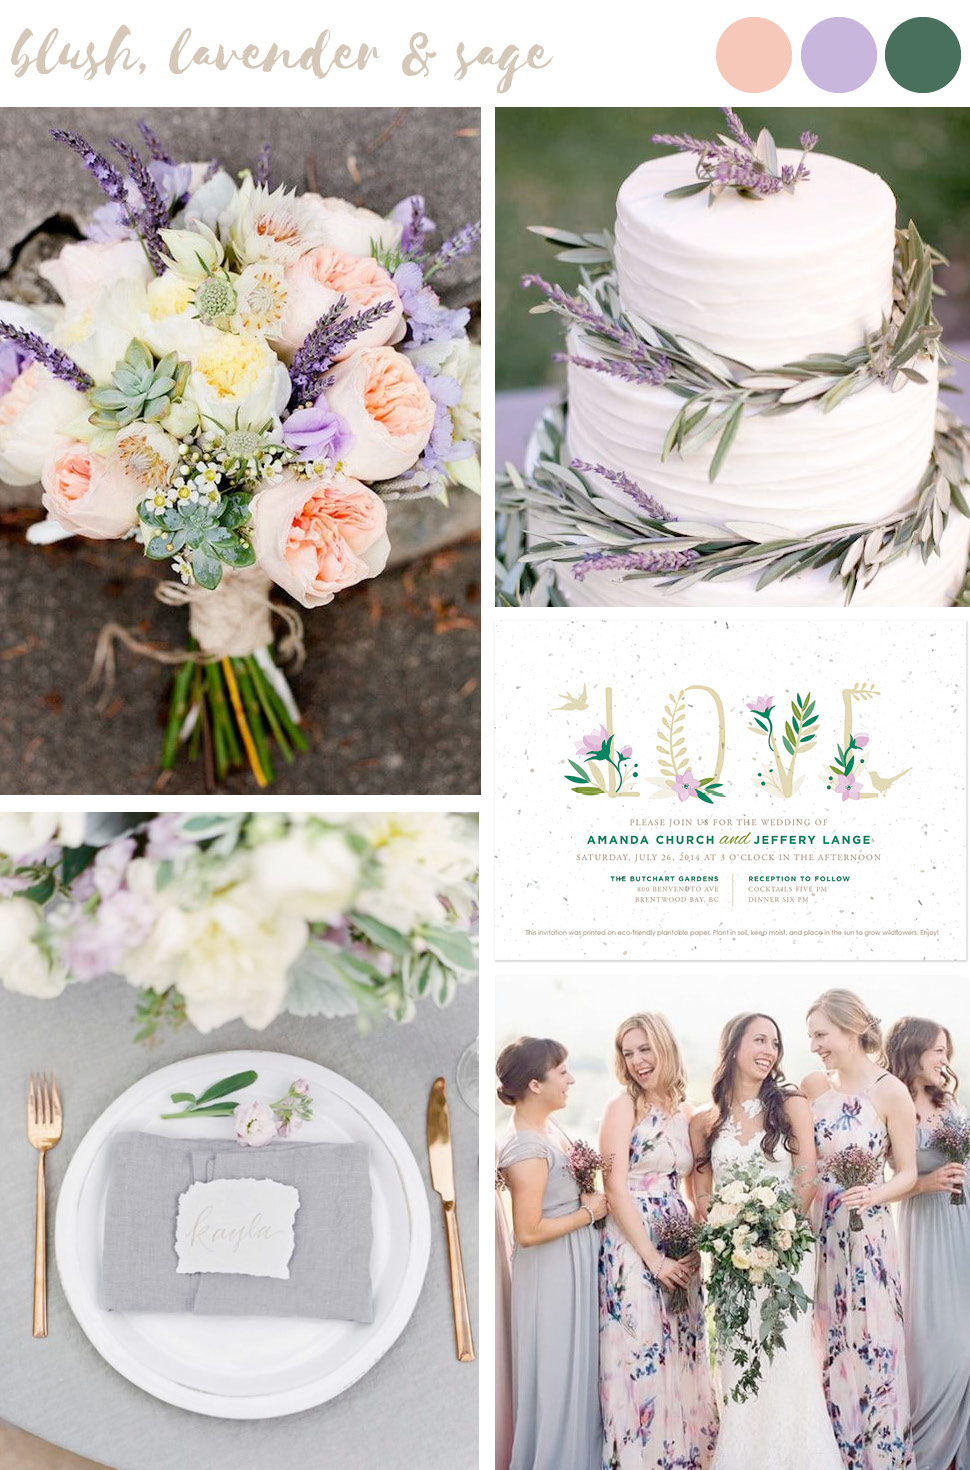 Find wedding color inspiration like this soft and femine palette of blush, lavender and sage green for stylish and trendy summer weddings.